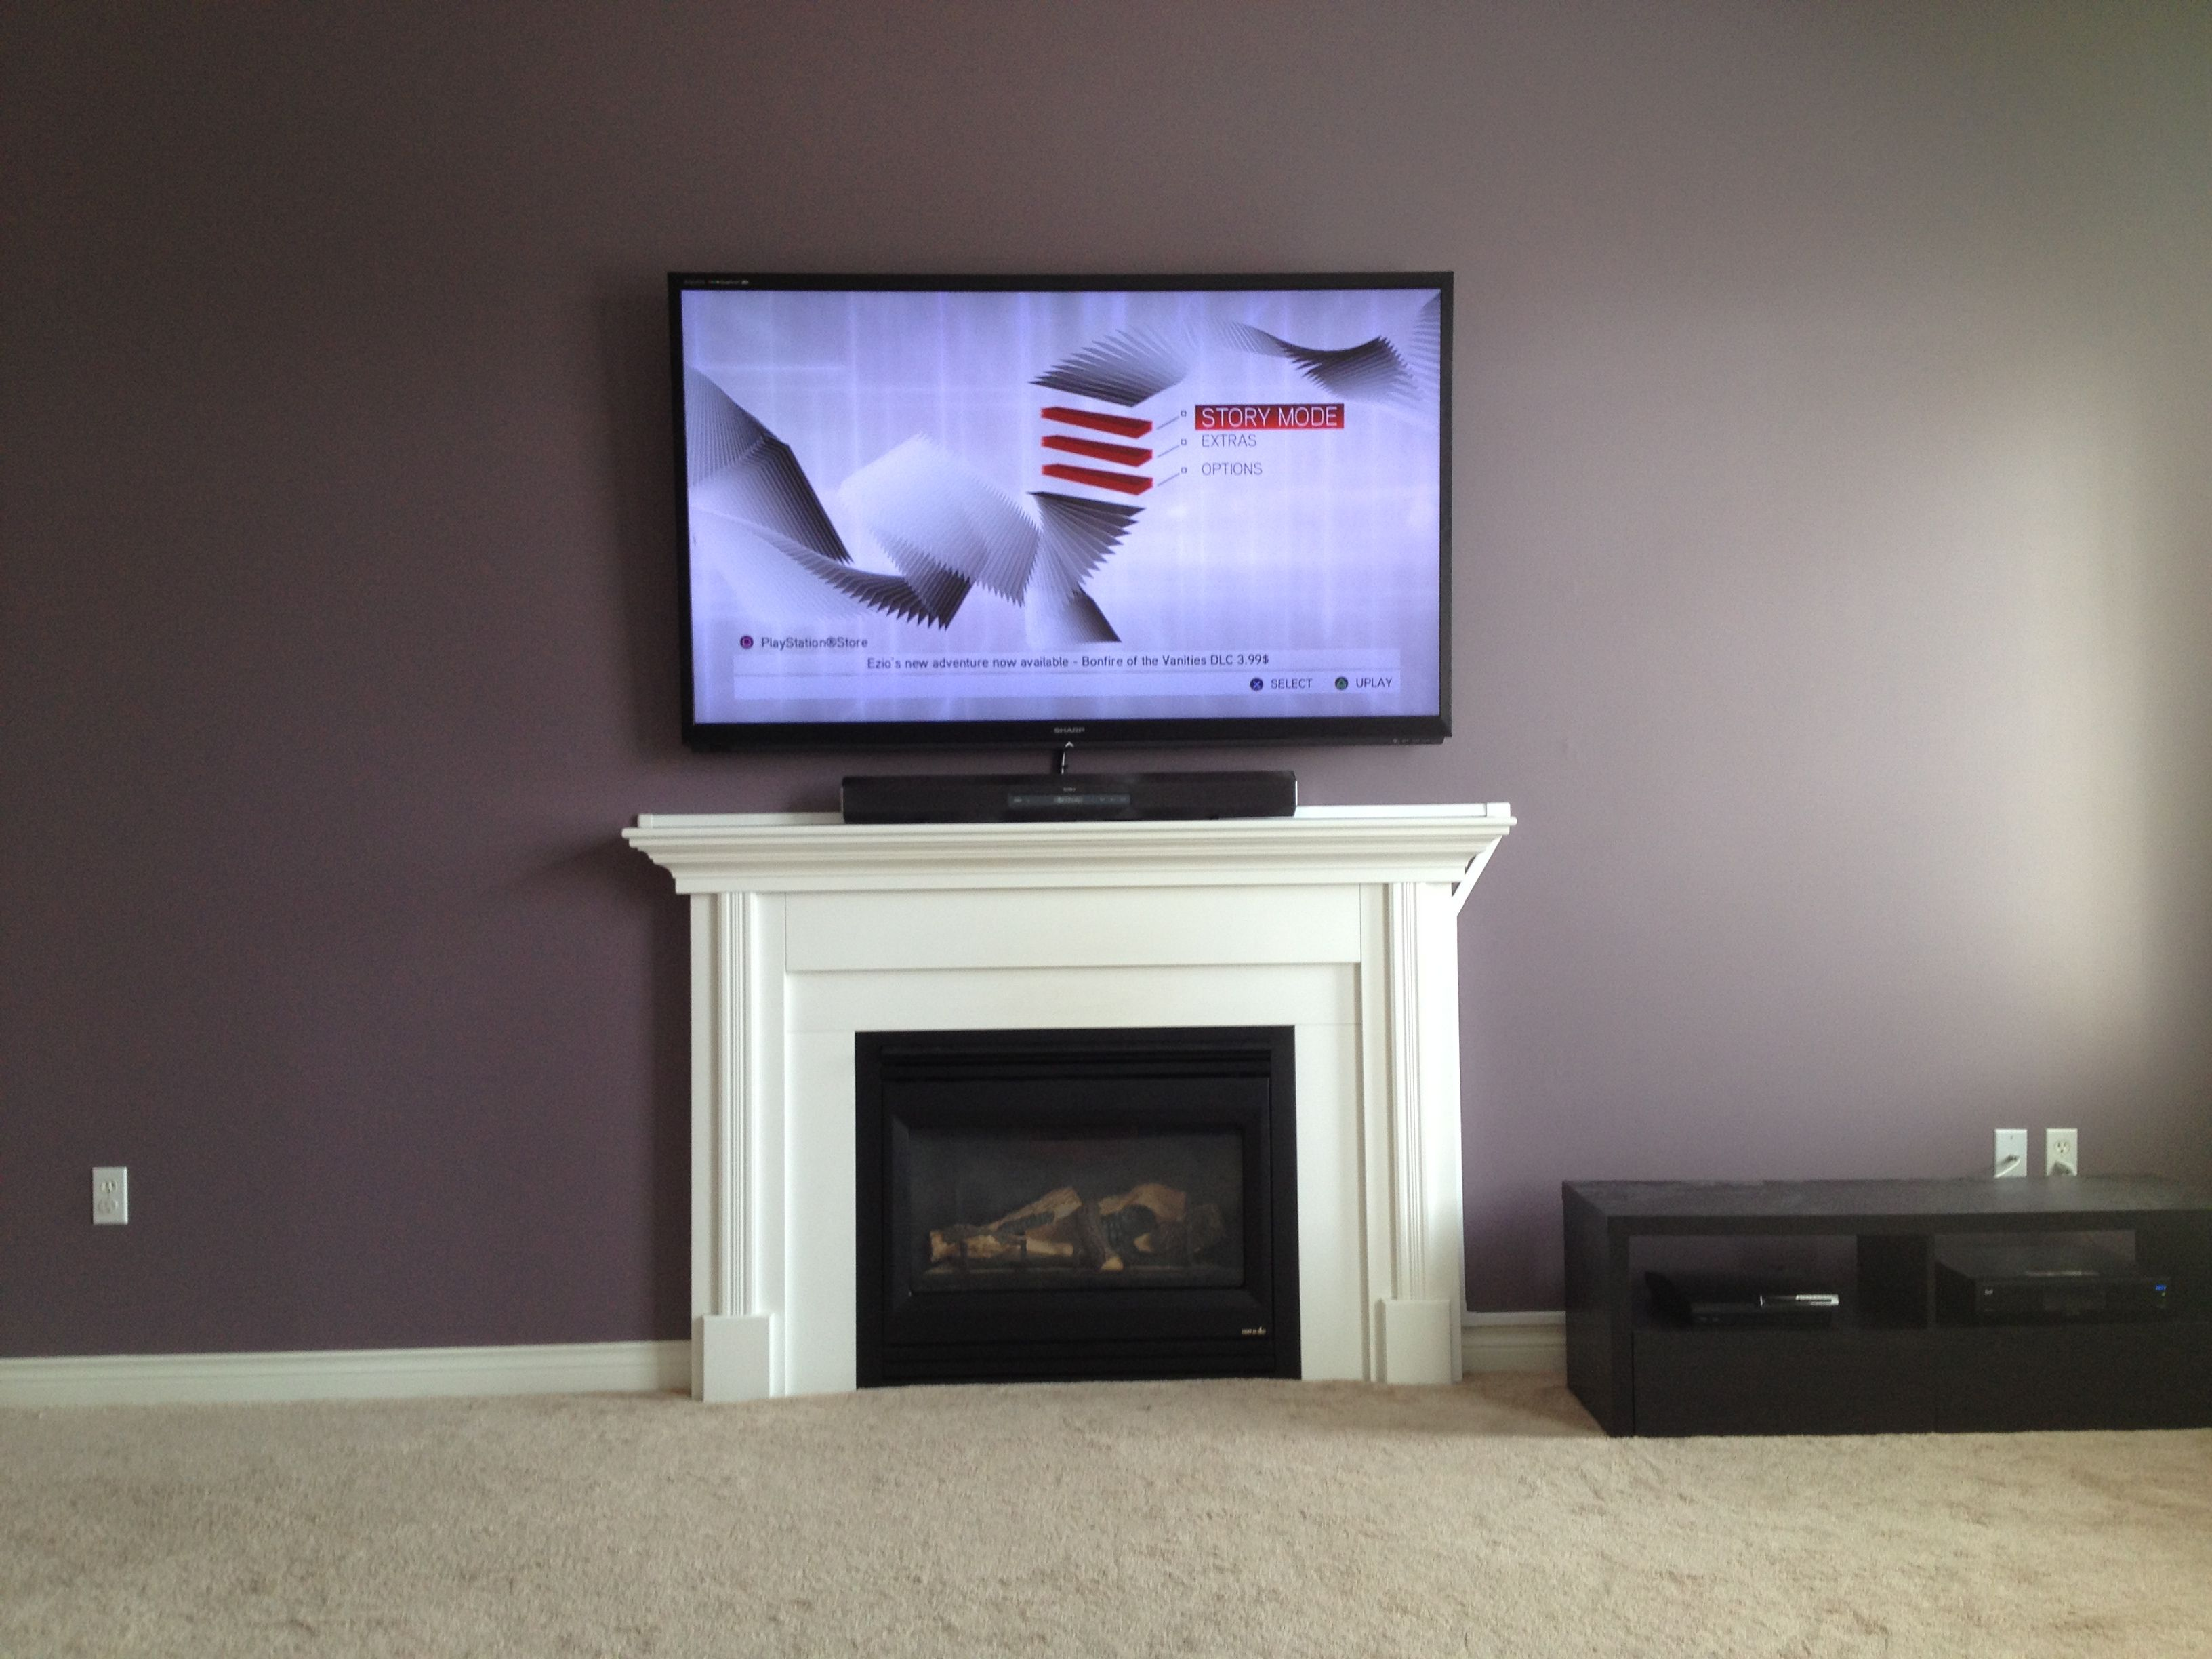 Tv Wall Mounted Over Fireplace With Wires Hidden With Raceway Tv Wall Mount Installation Tv Wall Wall Mounted Tv